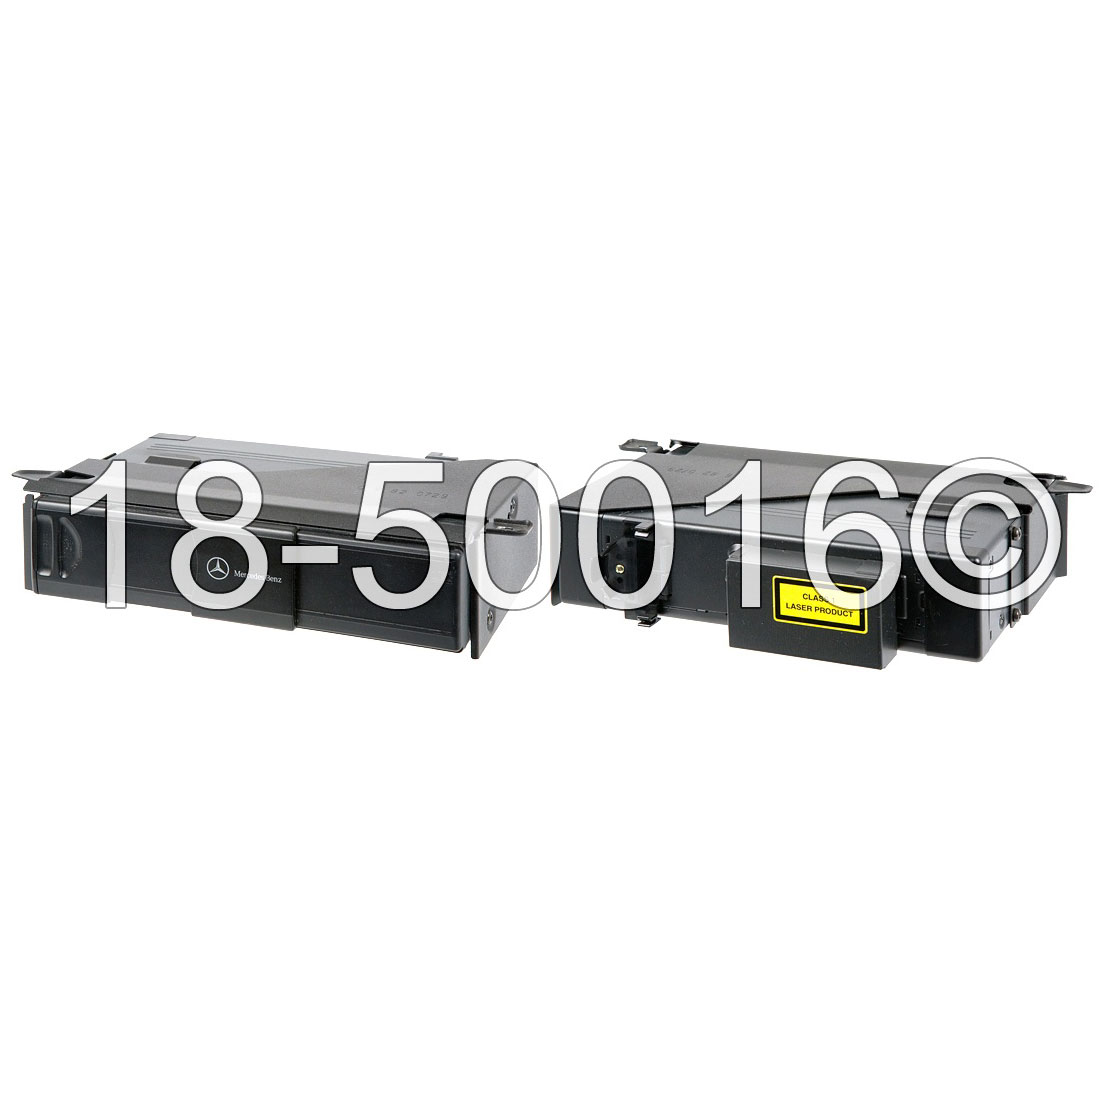 Mercedes_Benz S430                           CD or DVD ChangerCD or DVD Changer